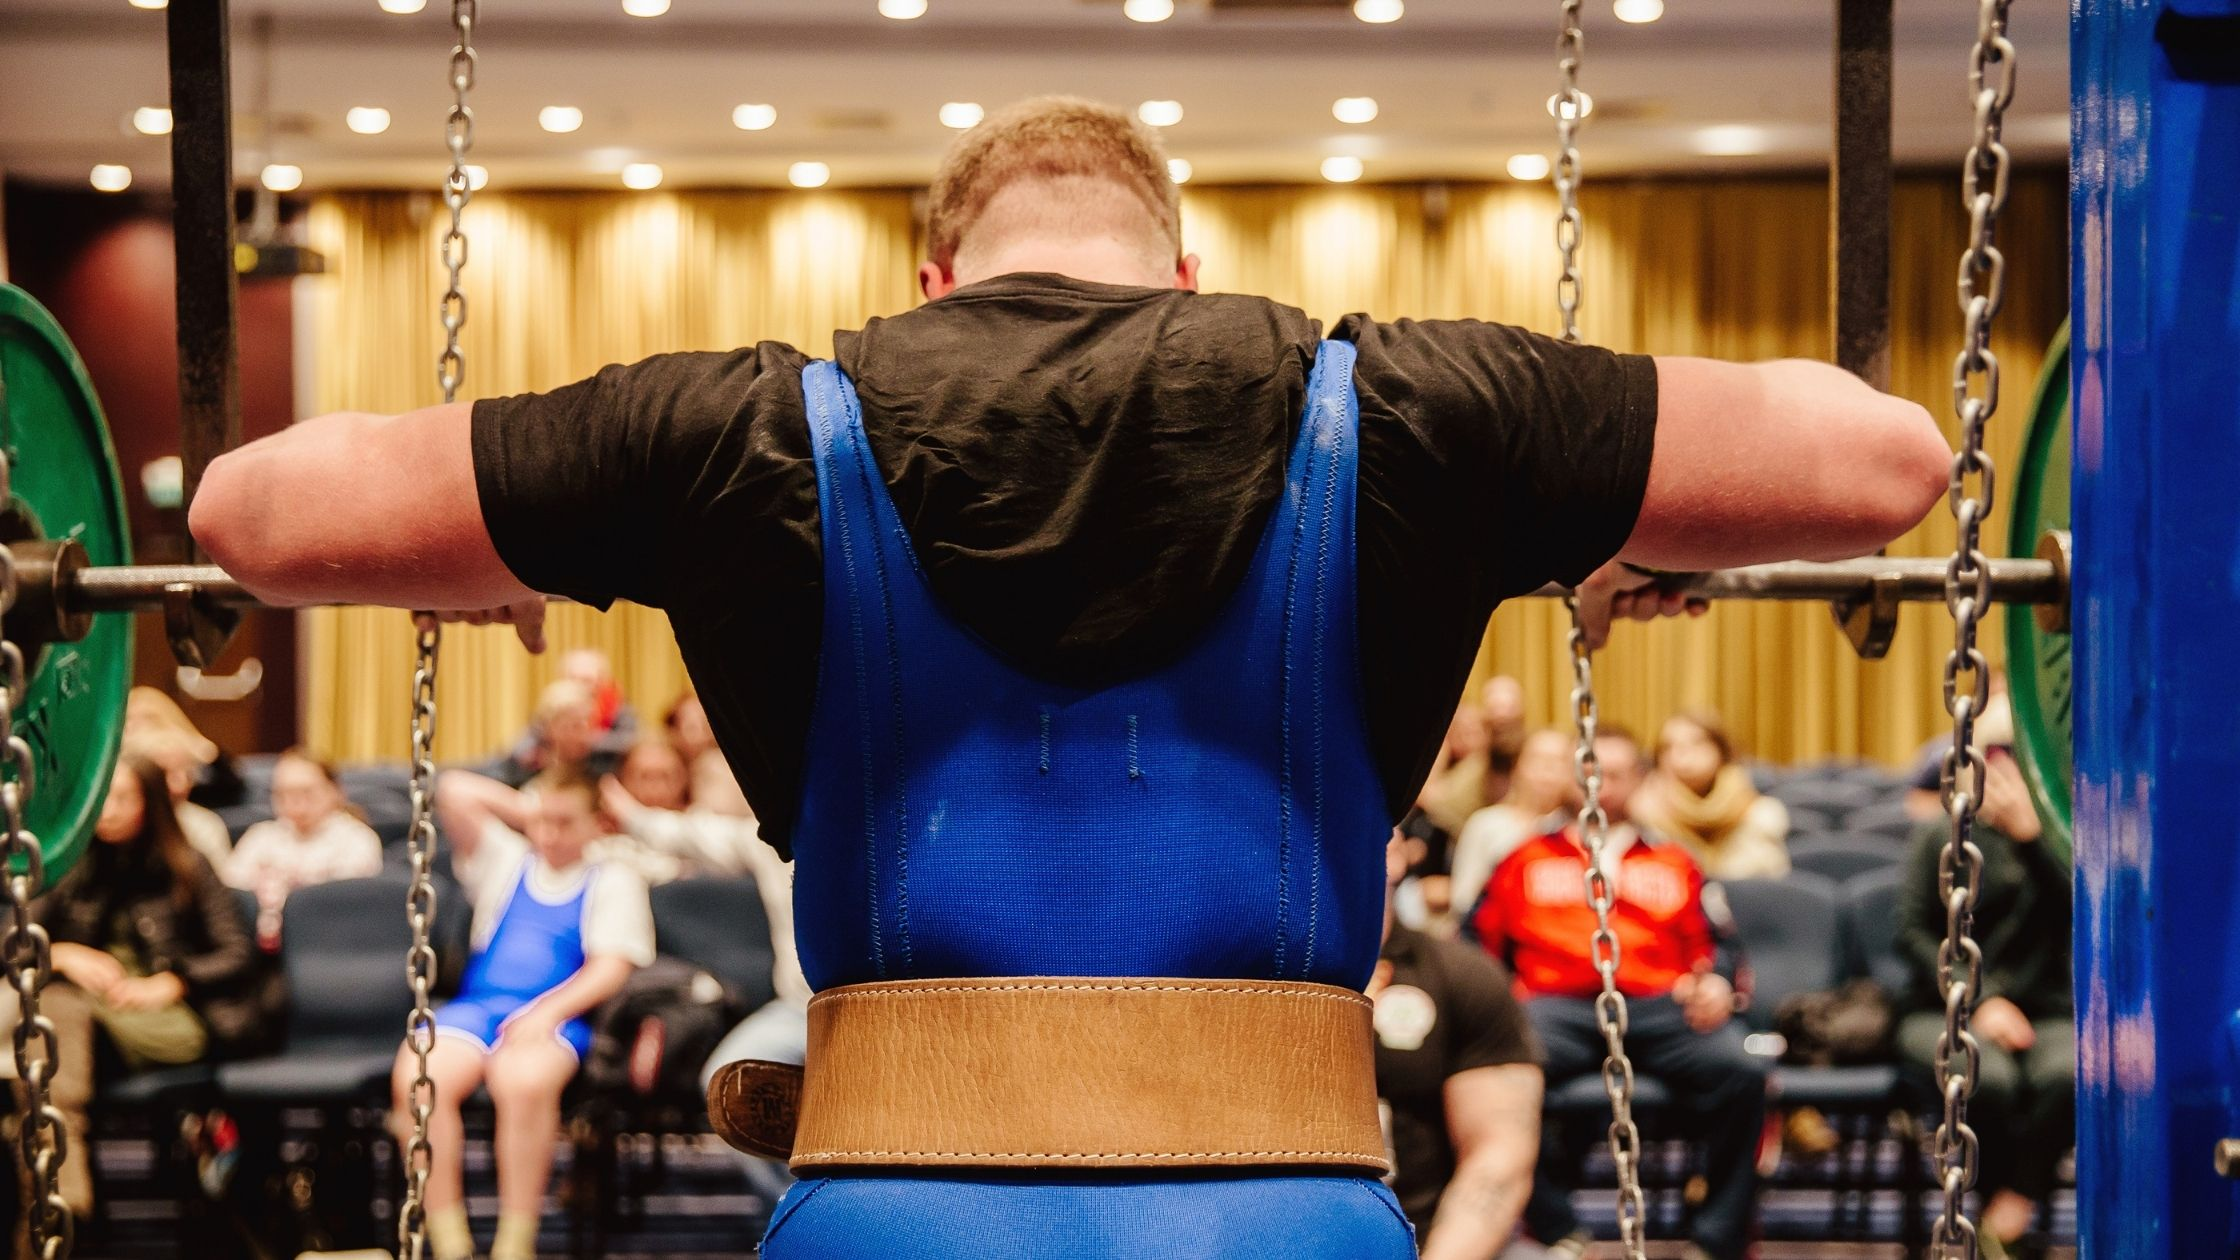 types of gyms: powerlifting gym